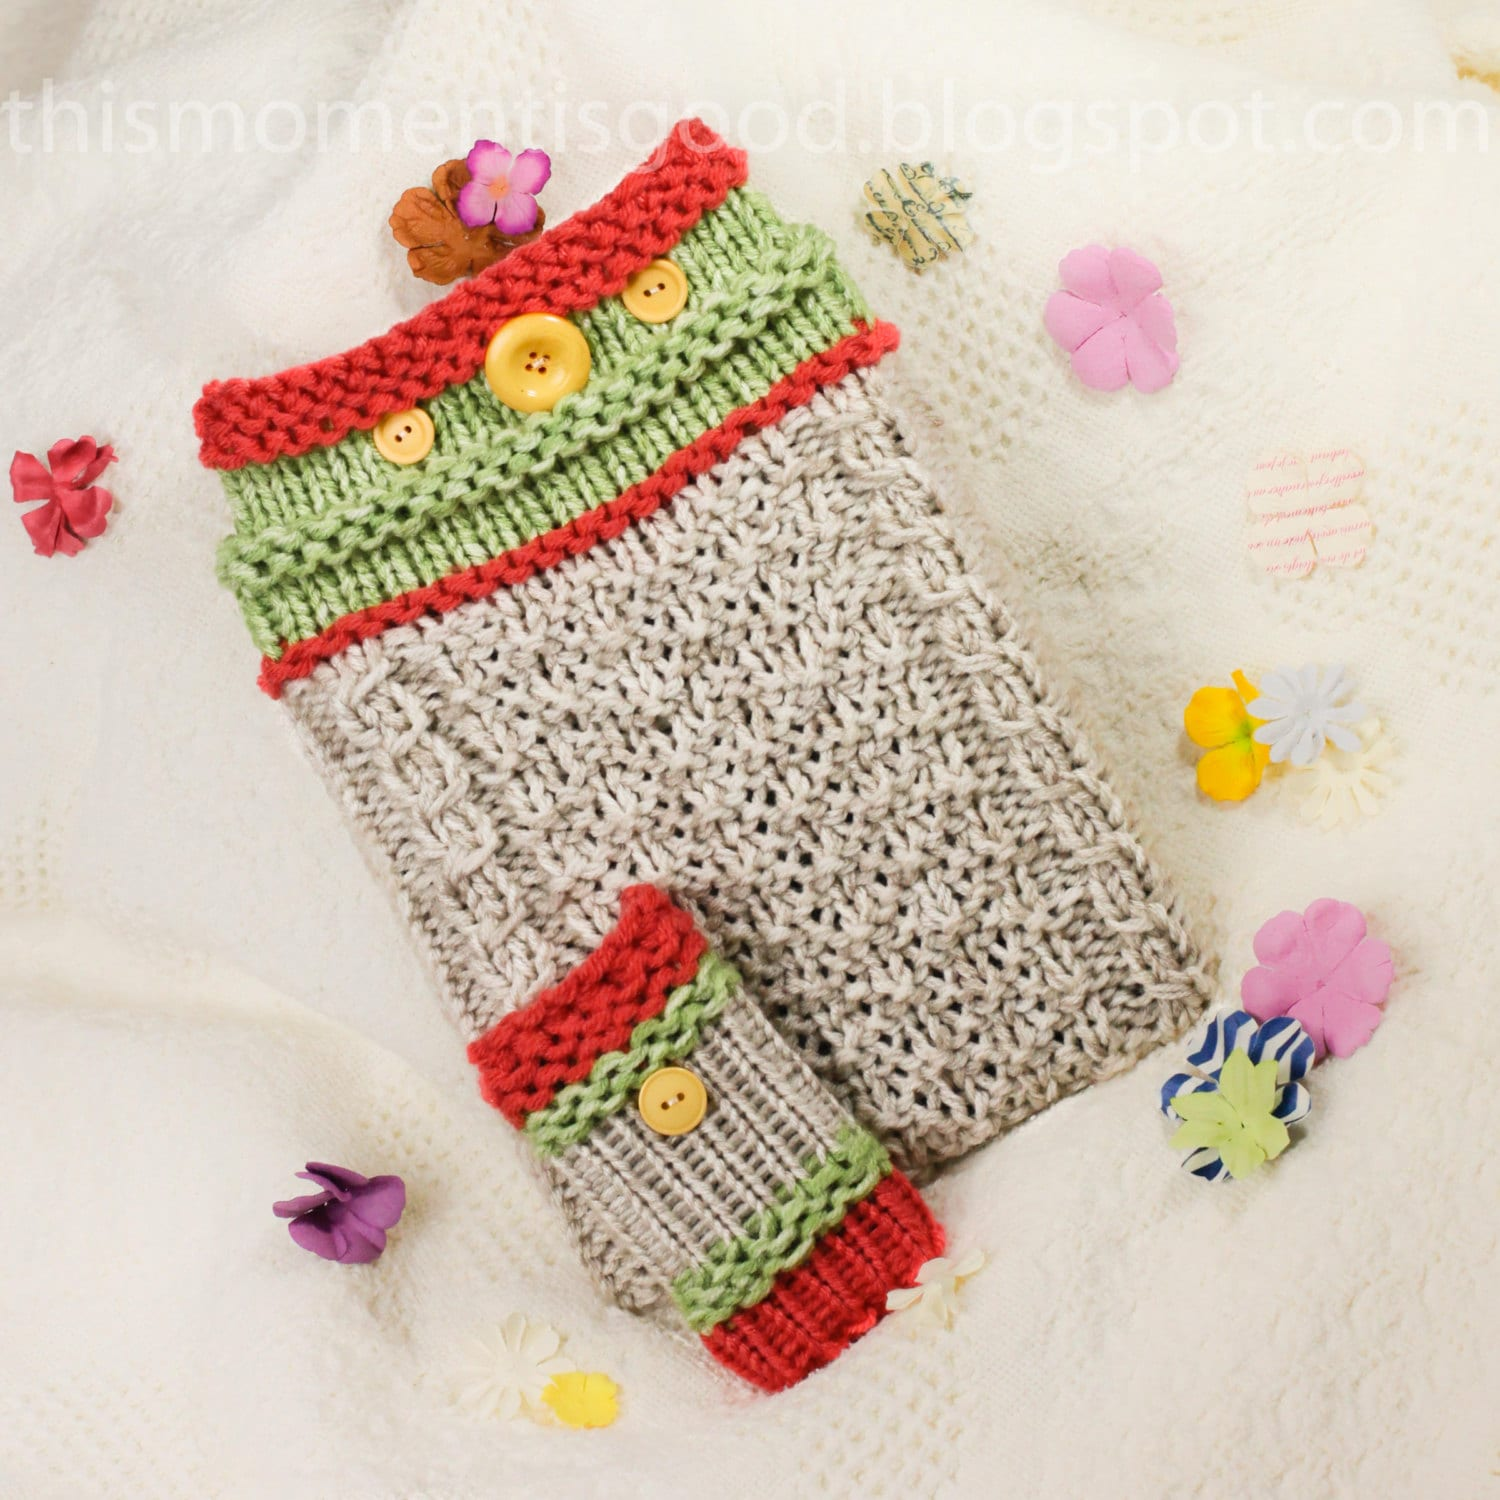 Loom Knit iPad Tablet Cover PATTERN. Plus iPhone Sock Pattern.